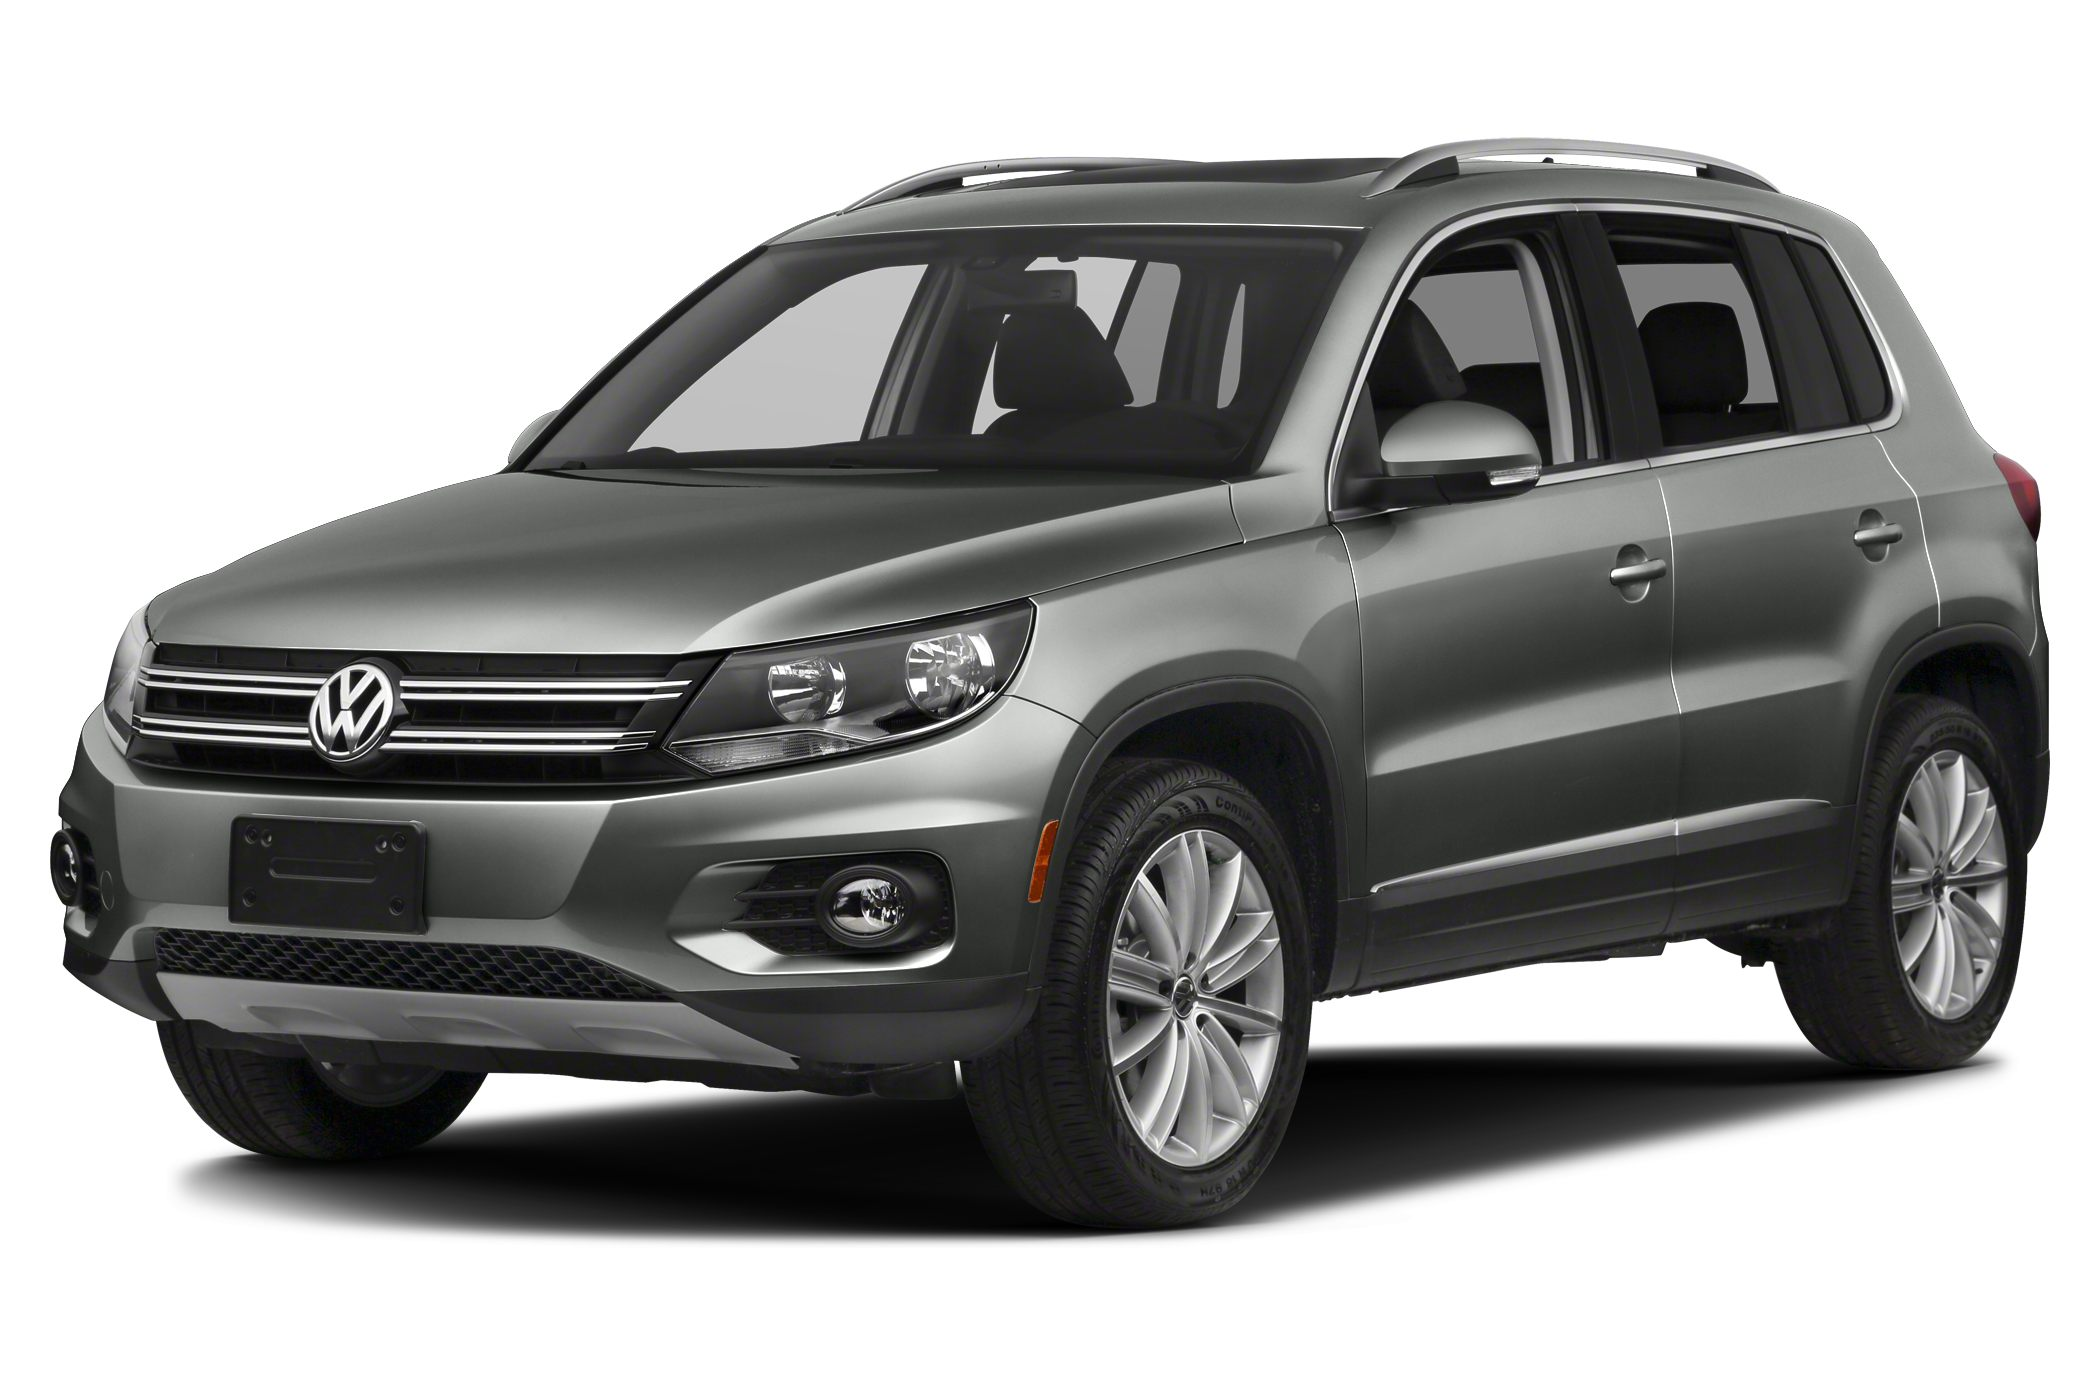 Volkswagen Tiguan News Photos And Buying Information